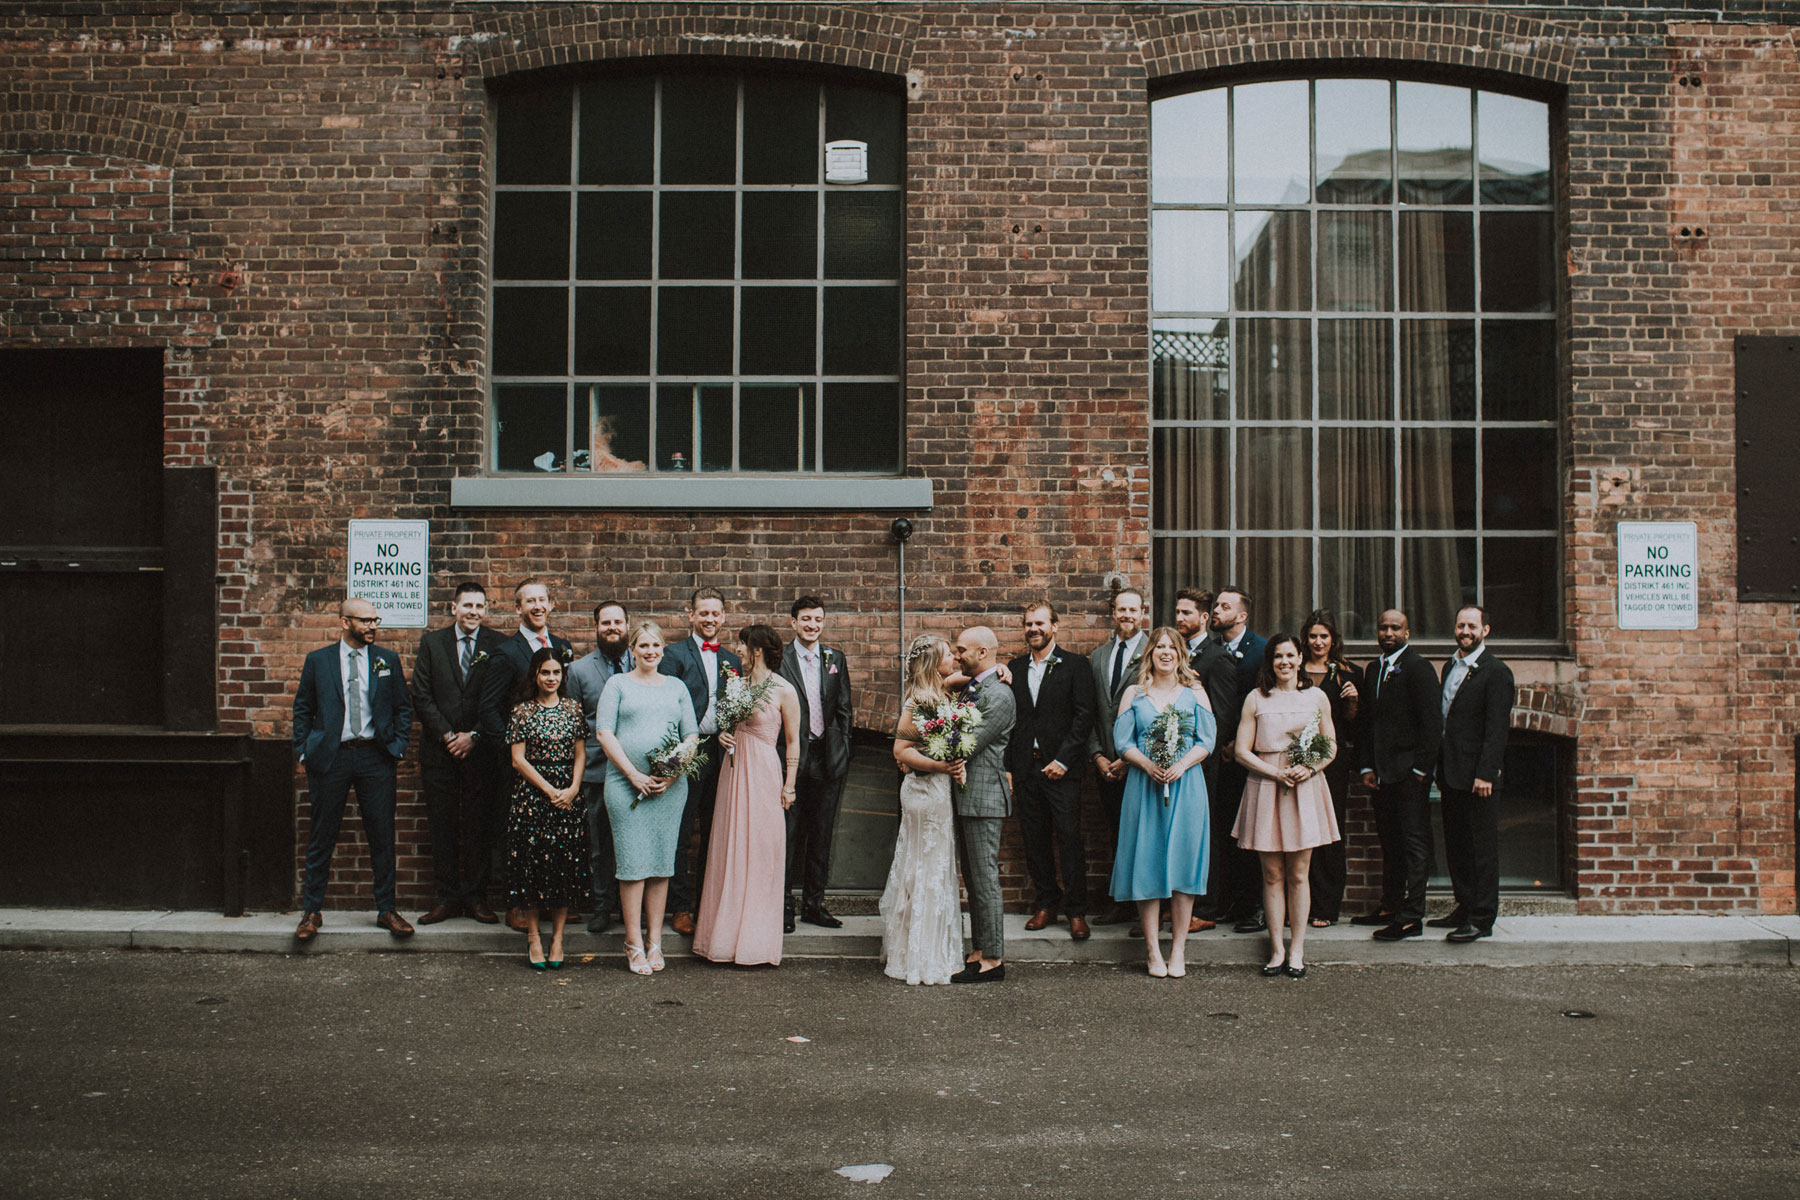 Wedding-Photographer-Distillery-Districk-Toronto